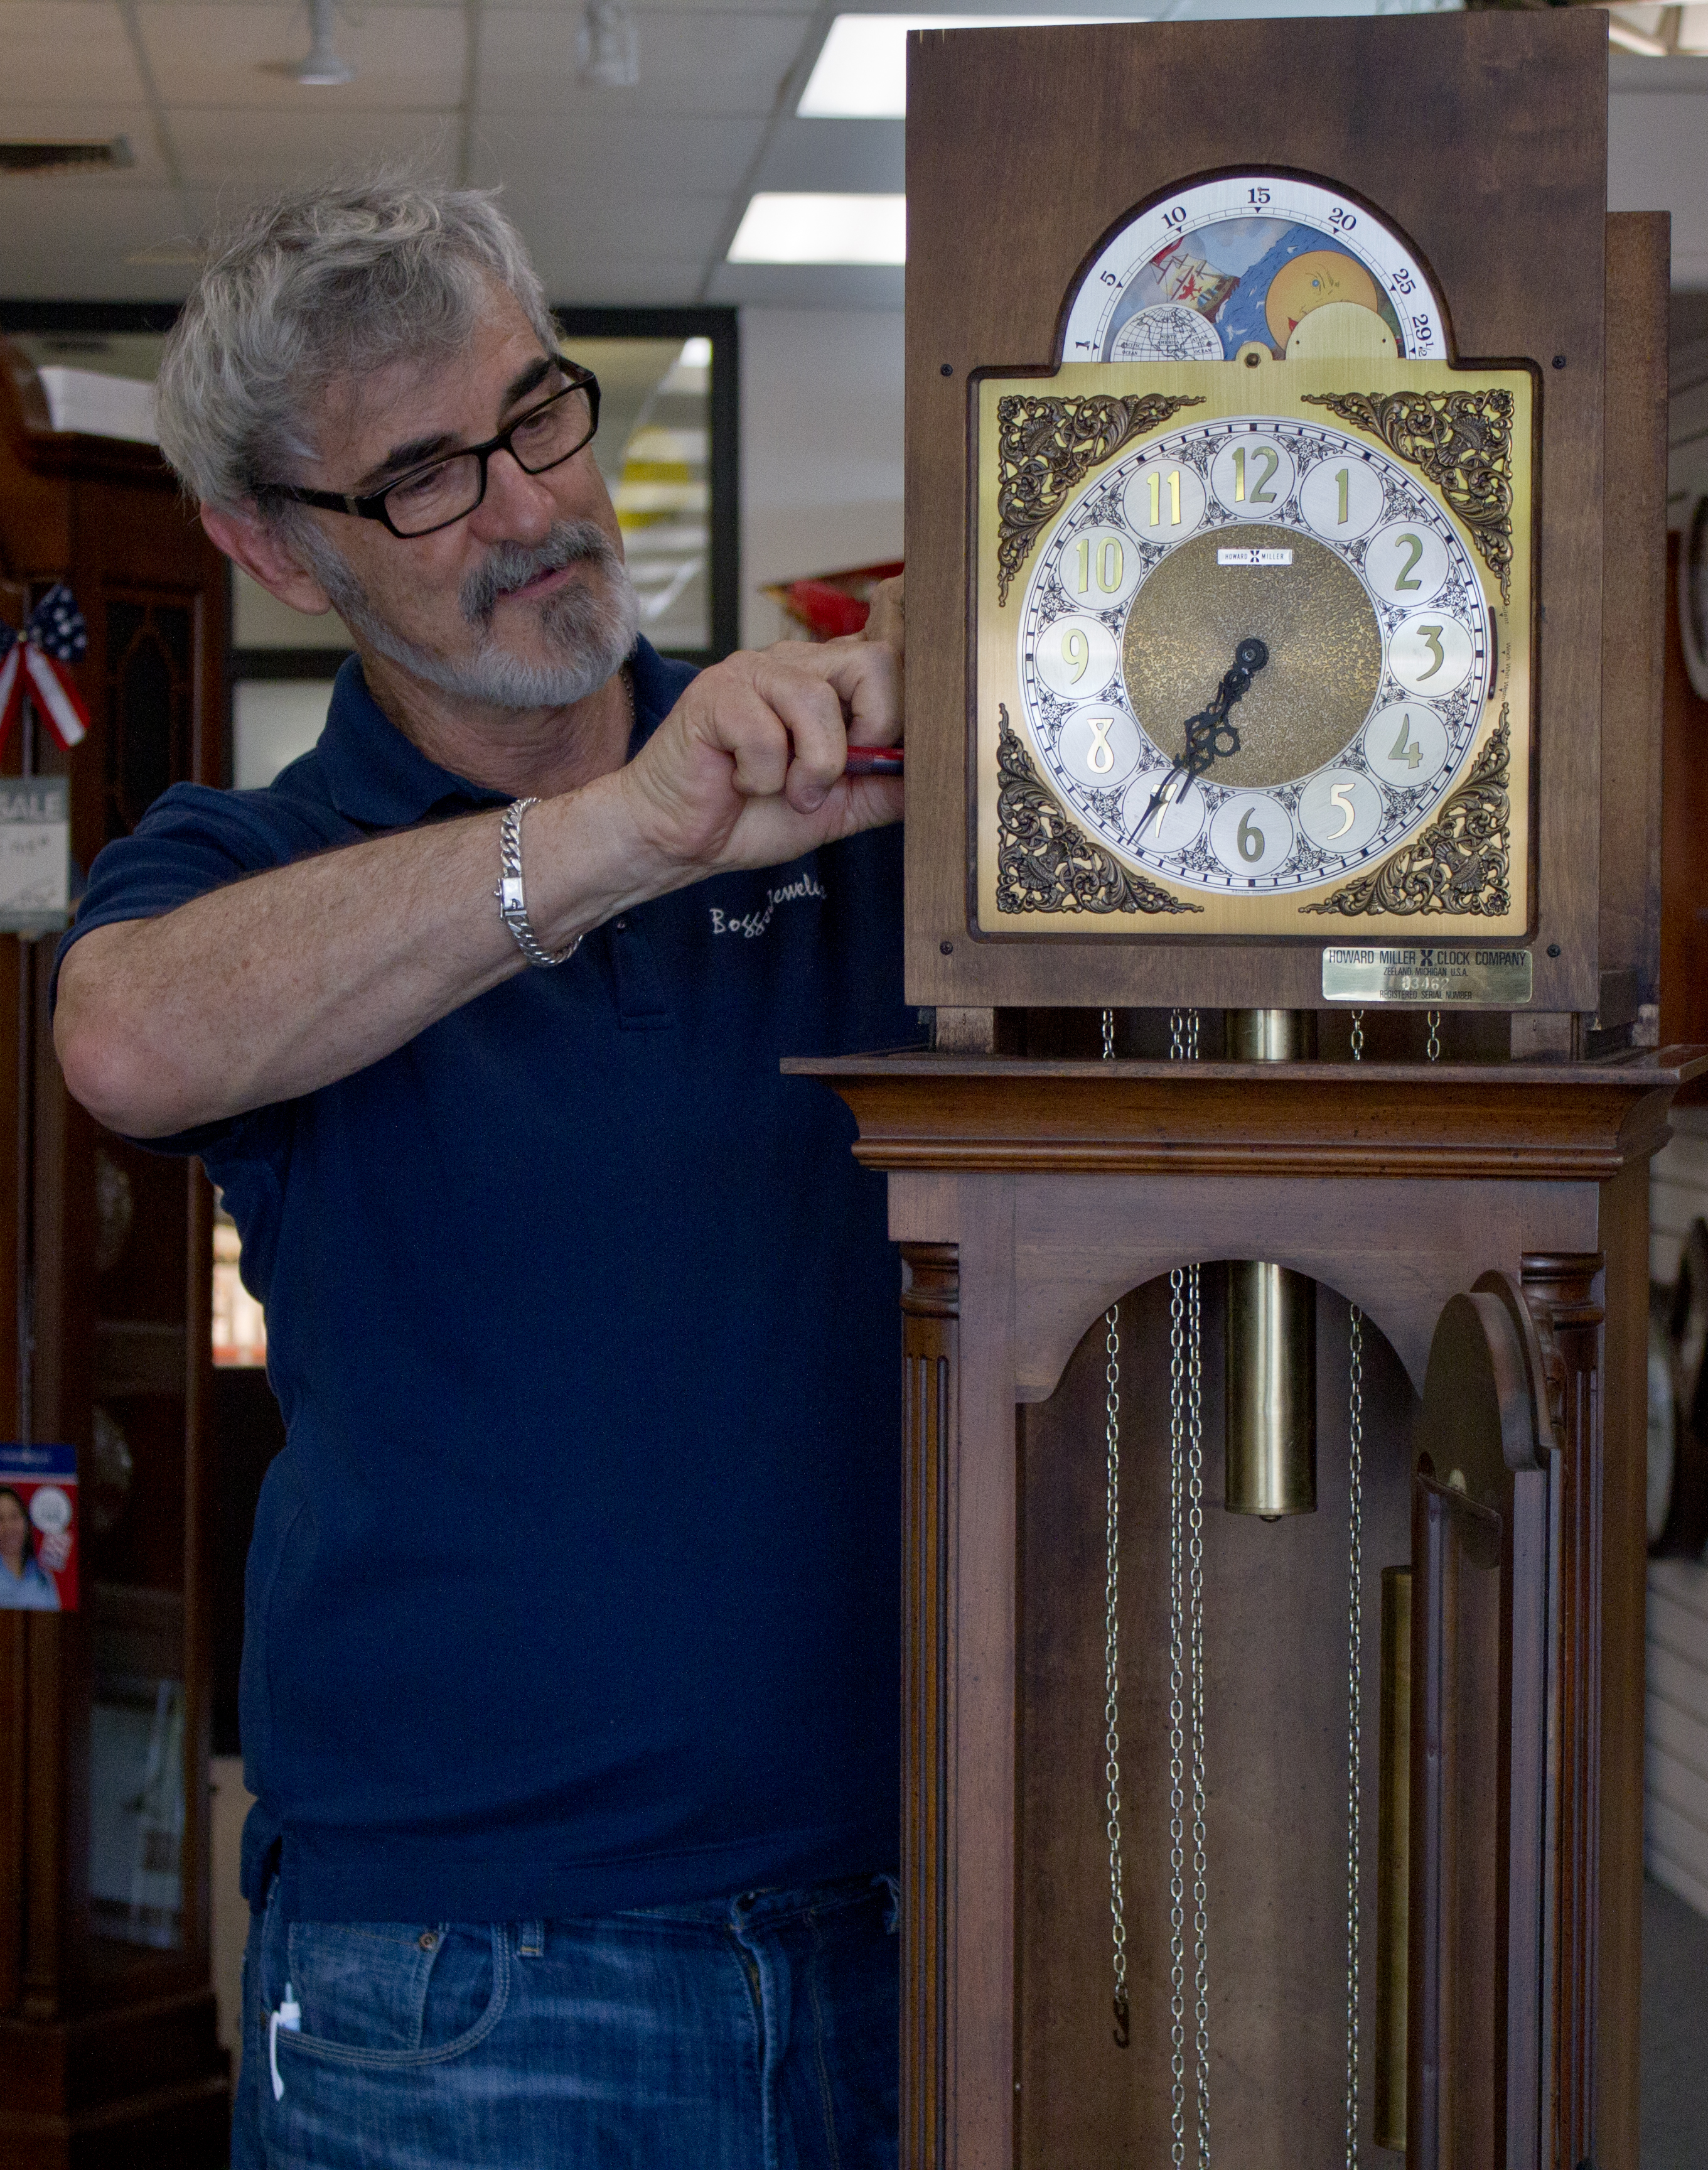 Studies show that over 86 percent of all grandfather clocks don't get regular maintenance of any kind. This mistake is so common we're willing to bet you are making it now. The solution is simple. Schedule an annual in-home service check up.